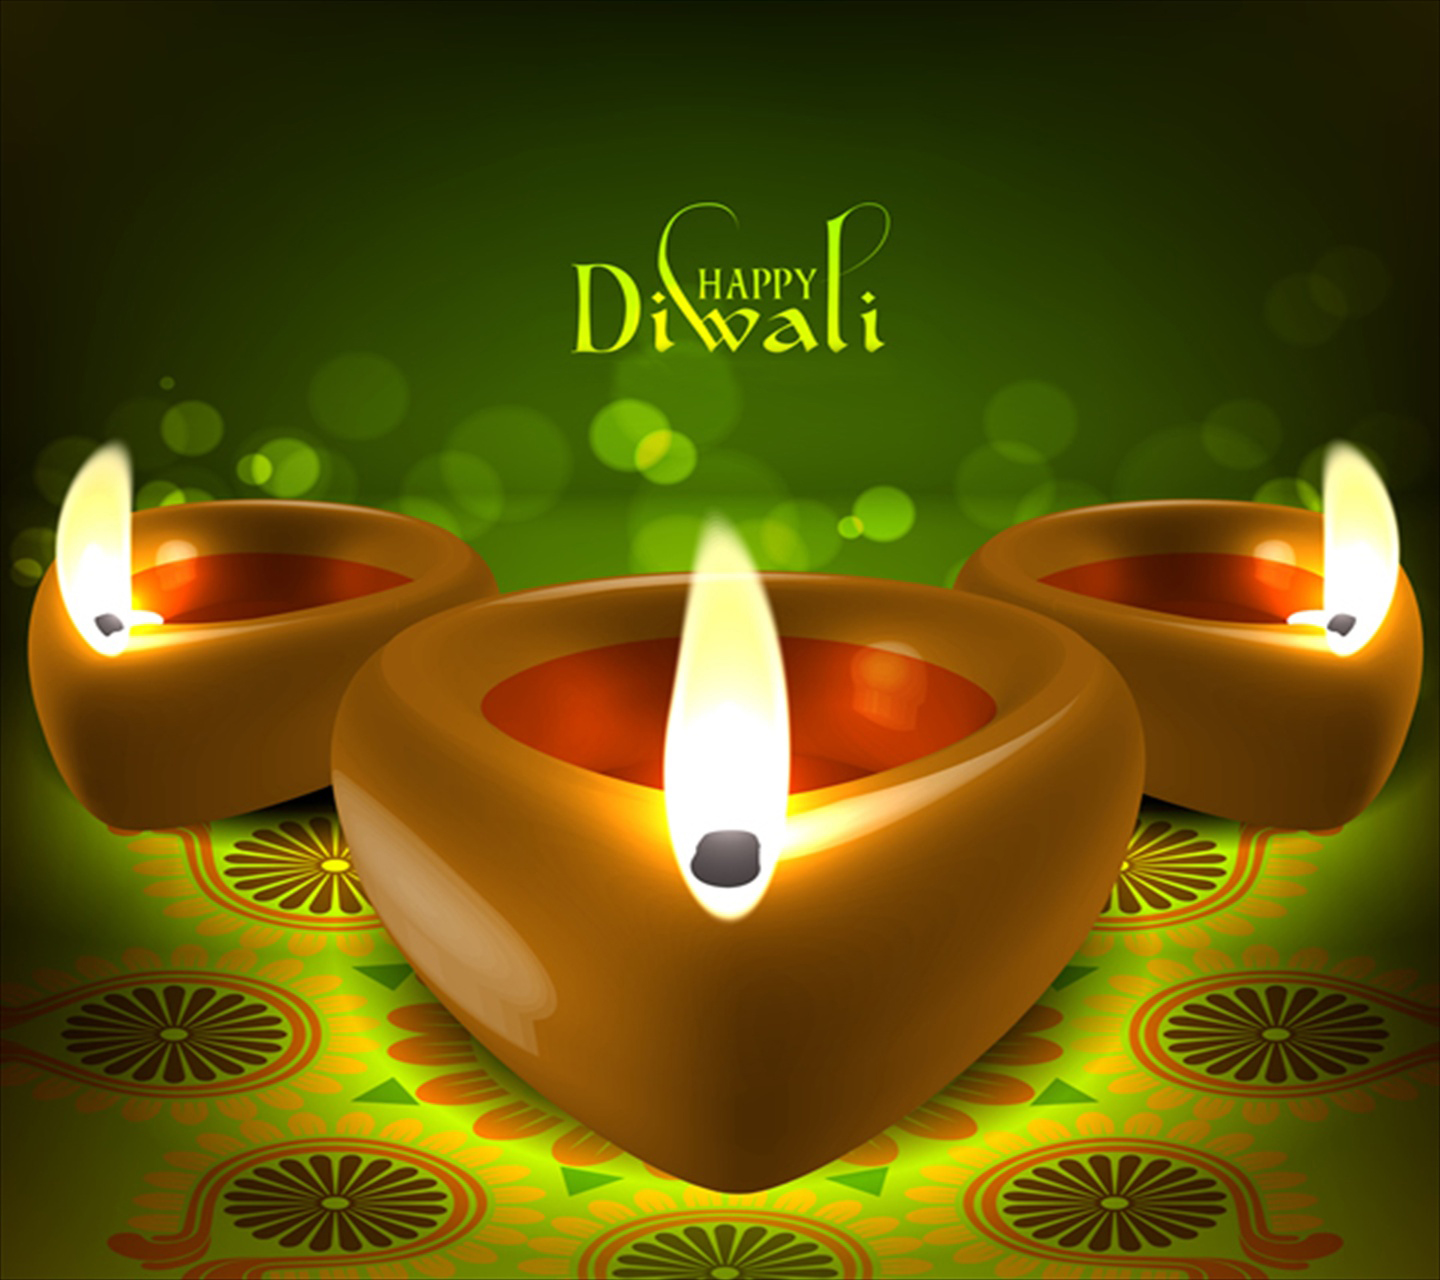 Happy Diwali Wishes Vector Image In High Quality ~ Happy ...